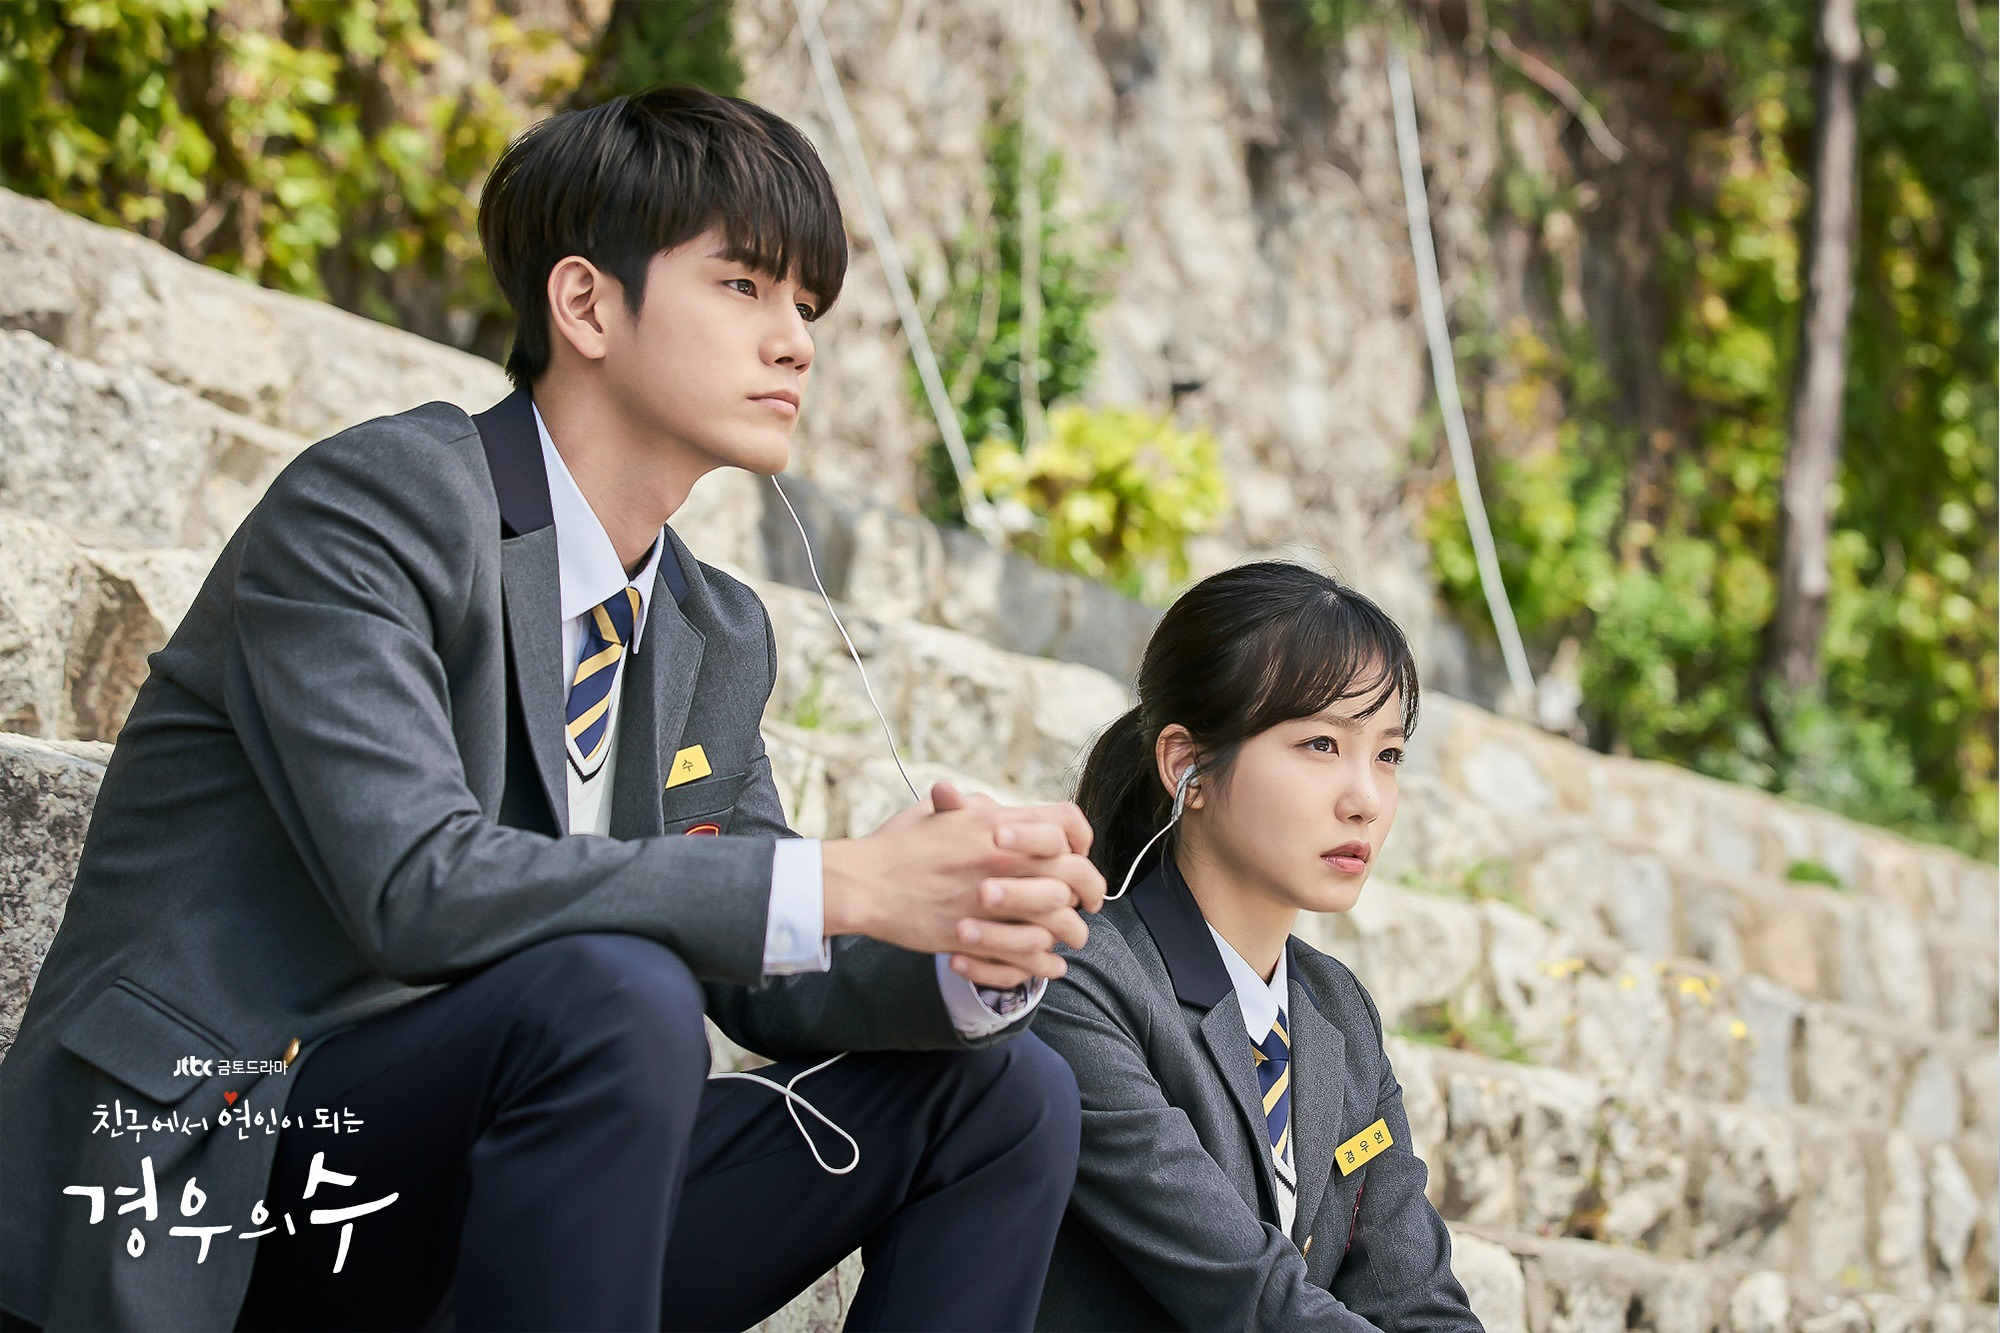 New Korean Dramas 2020 - More Than Friends, Ong Seong-wu, Shin Ye-eun